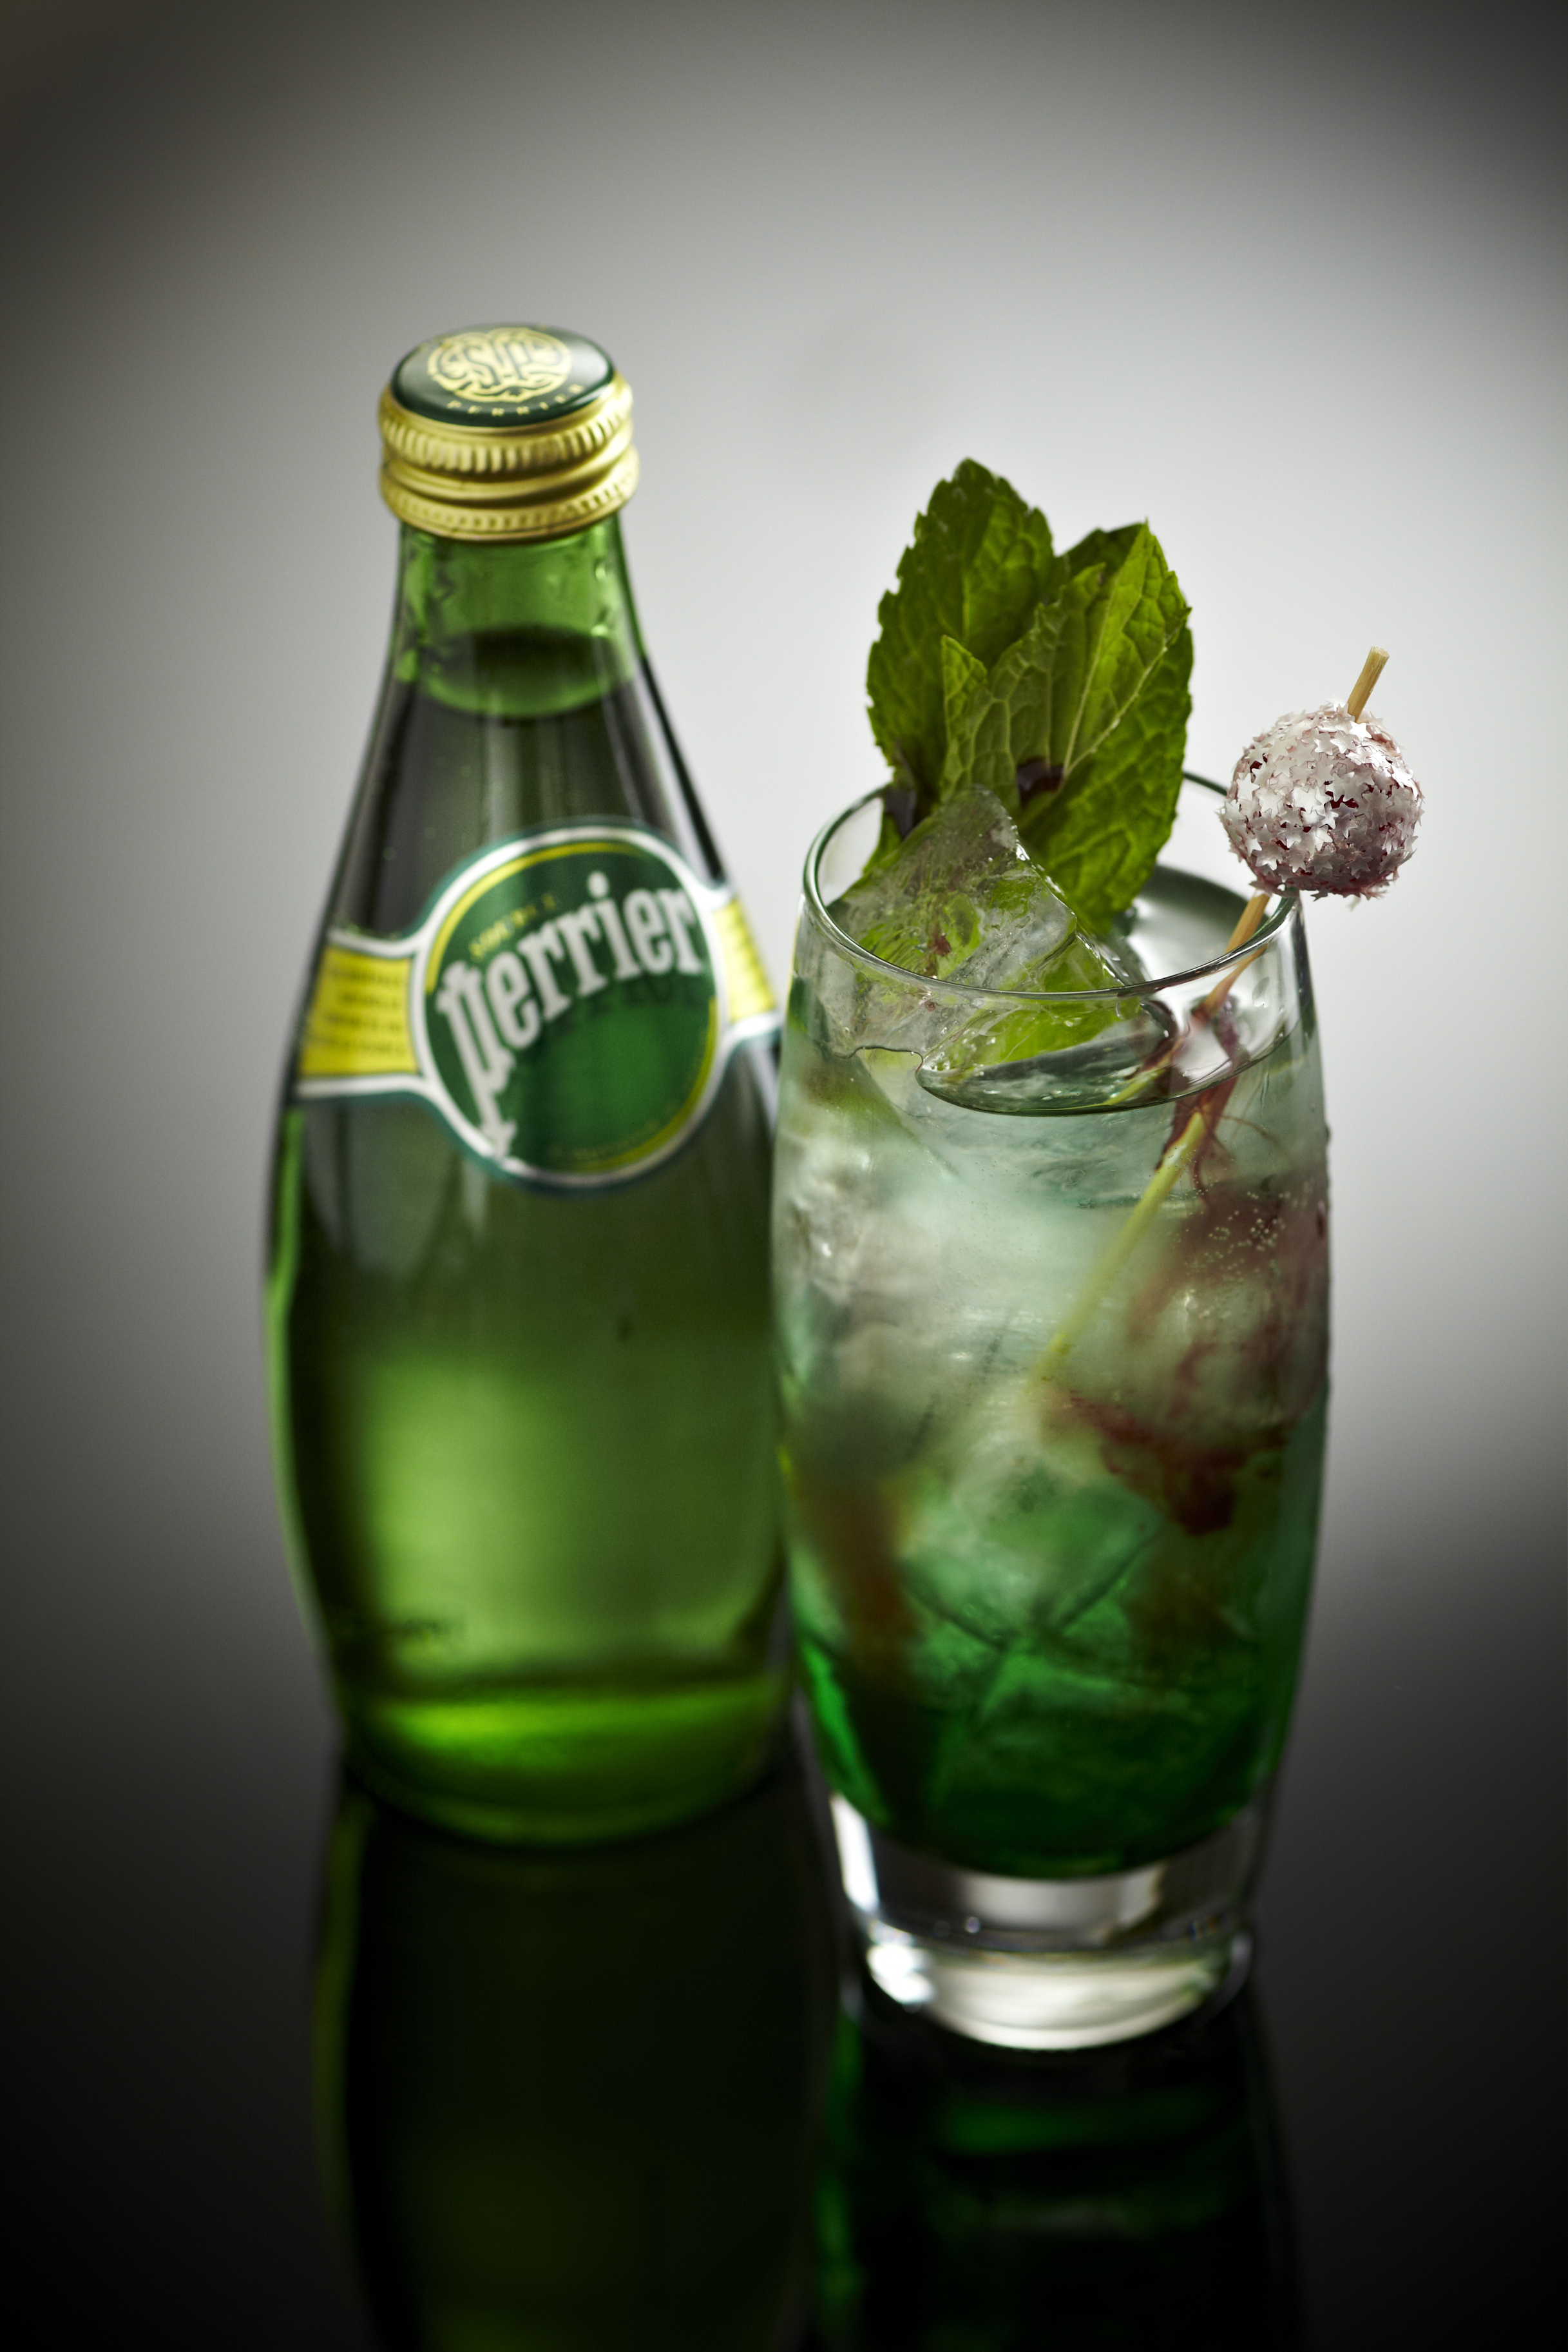 HQ Perrier Wallpapers | File 2537.29Kb